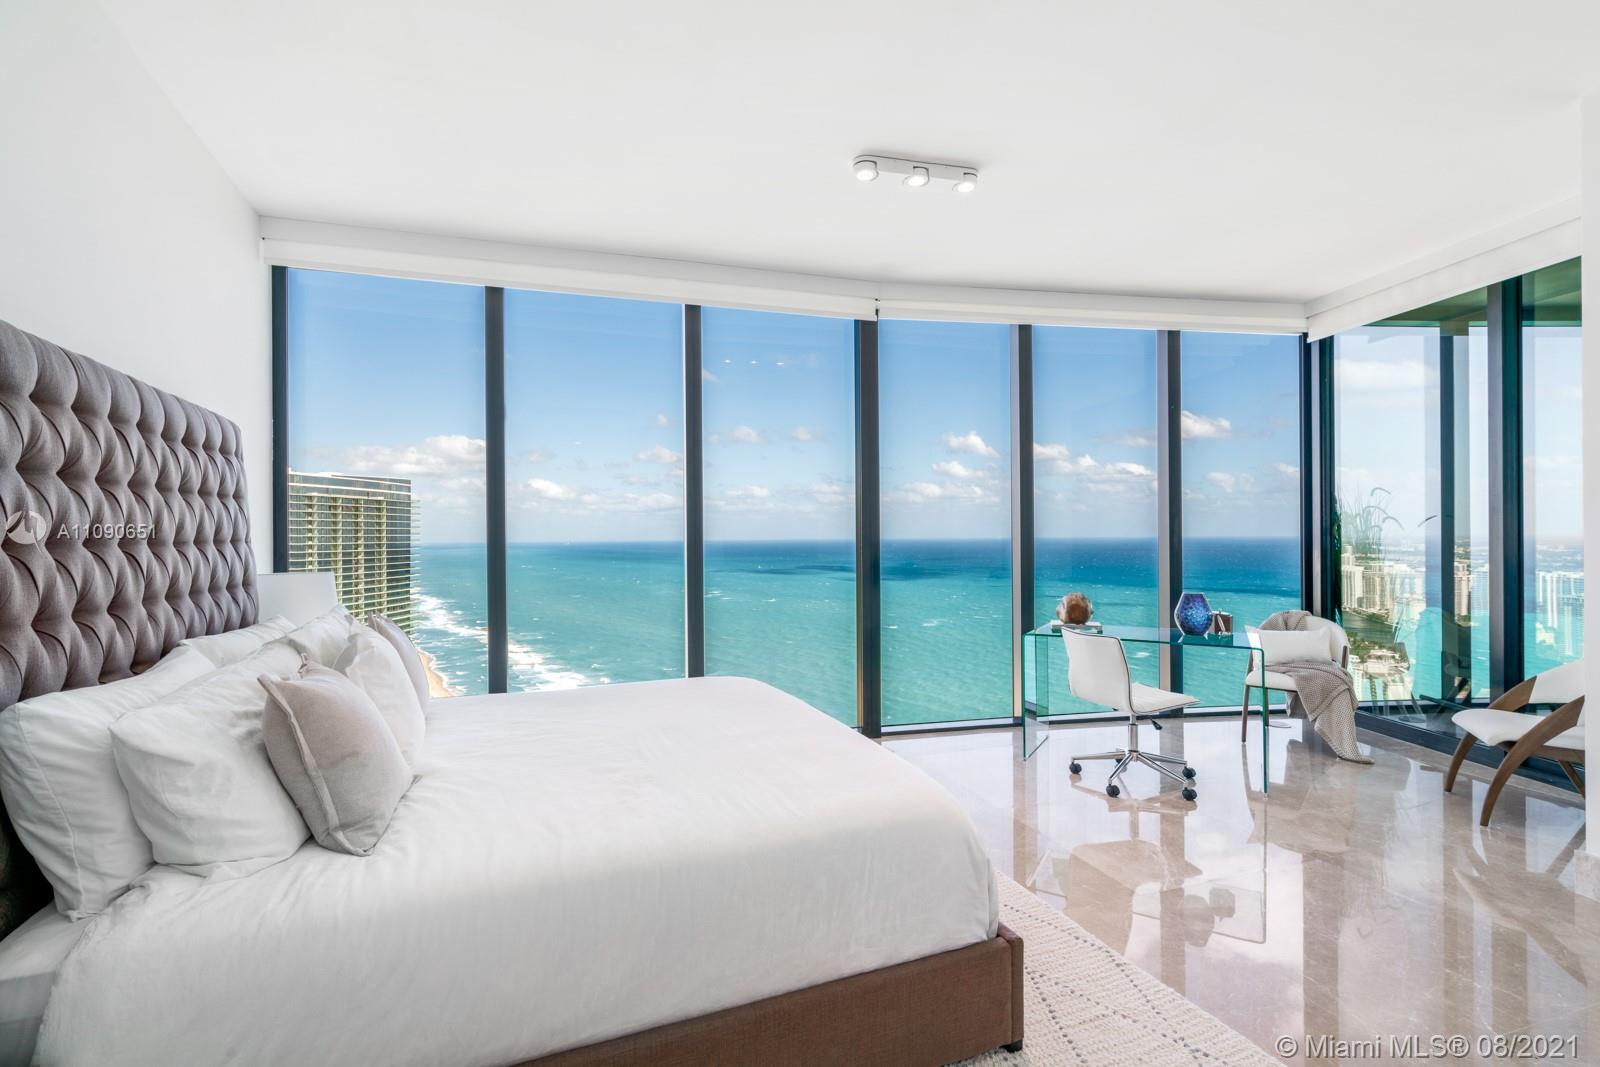 BEST UNOBSTRUCTED OCEAN VIEWS in the entire building! The only building you can drive your car into